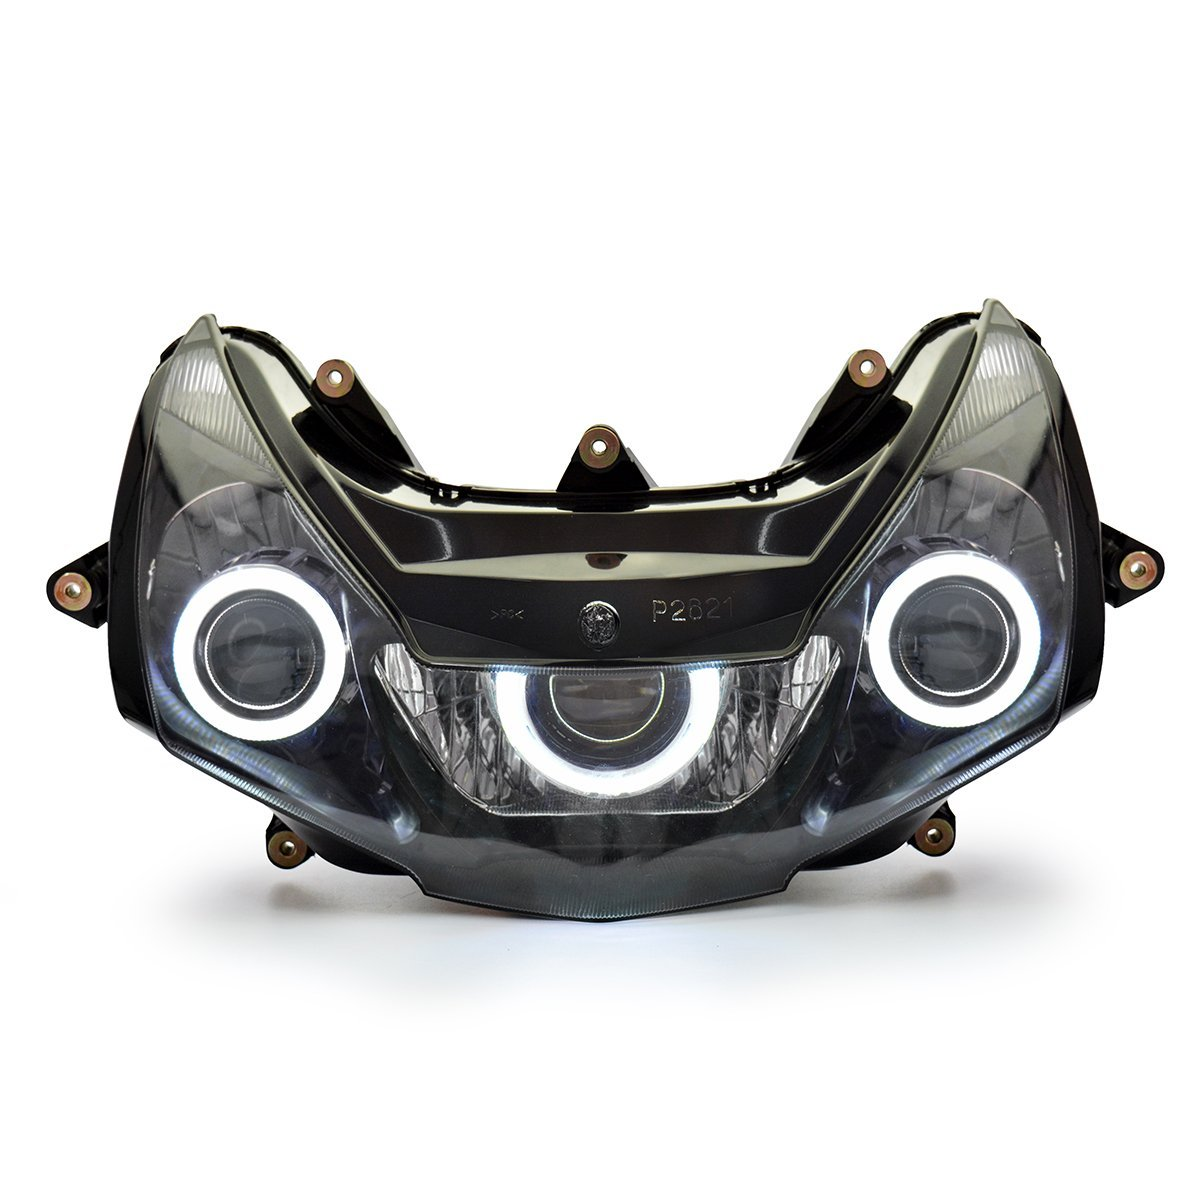 KT Headlight Assembly for Honda CBR954RR 2002-2003 White Angel Eye